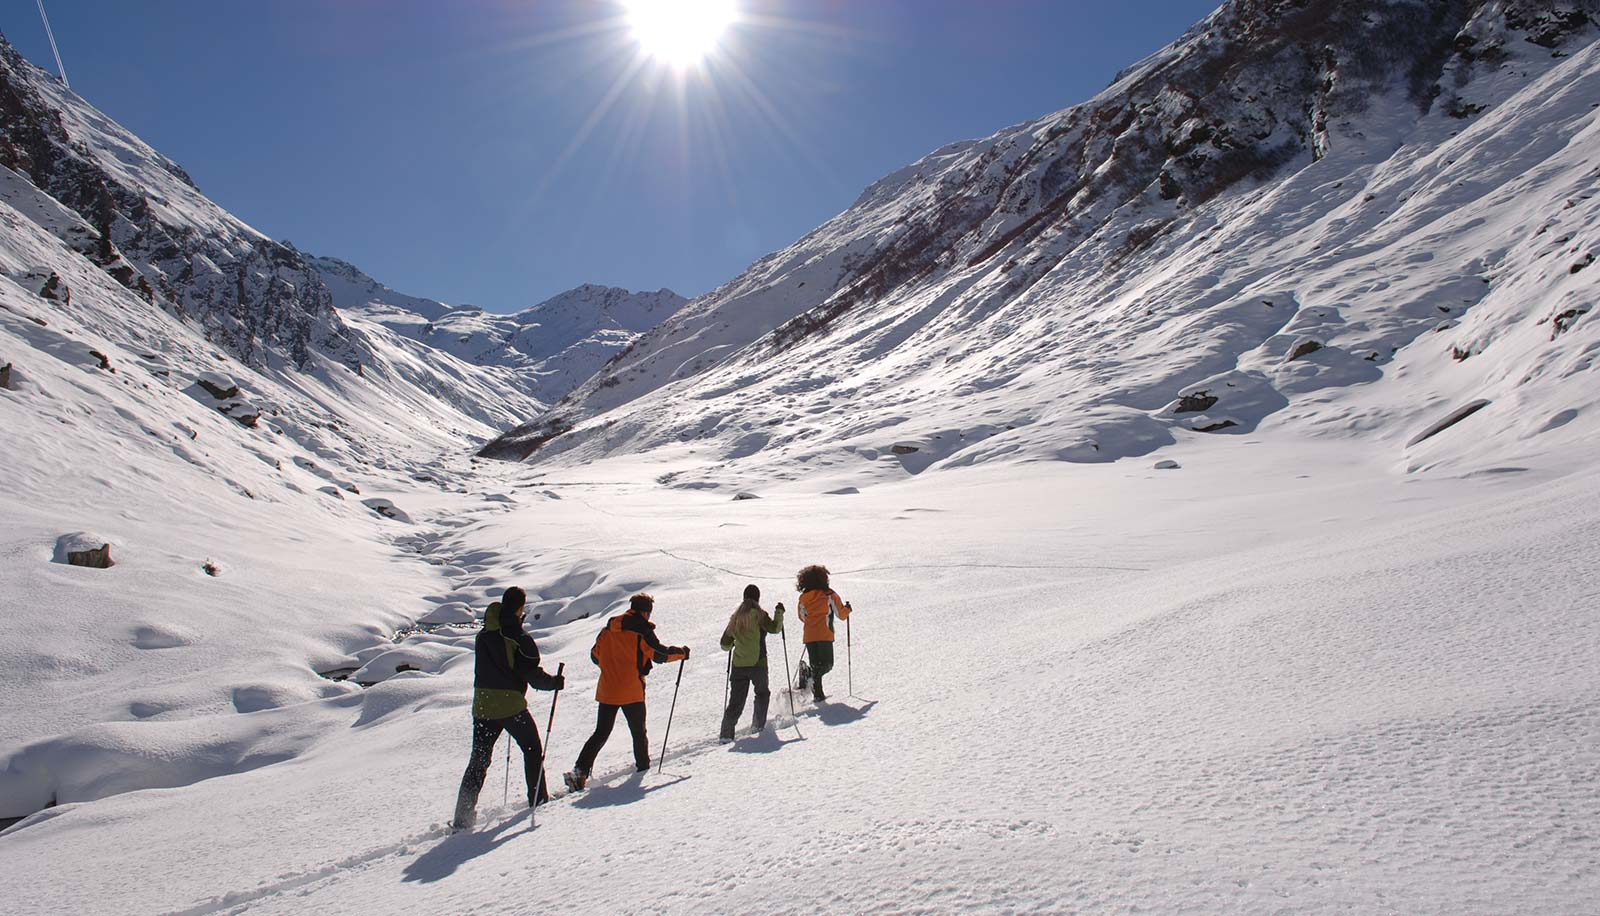 Four snow-shoe hiker on a snowy path on a sunny day